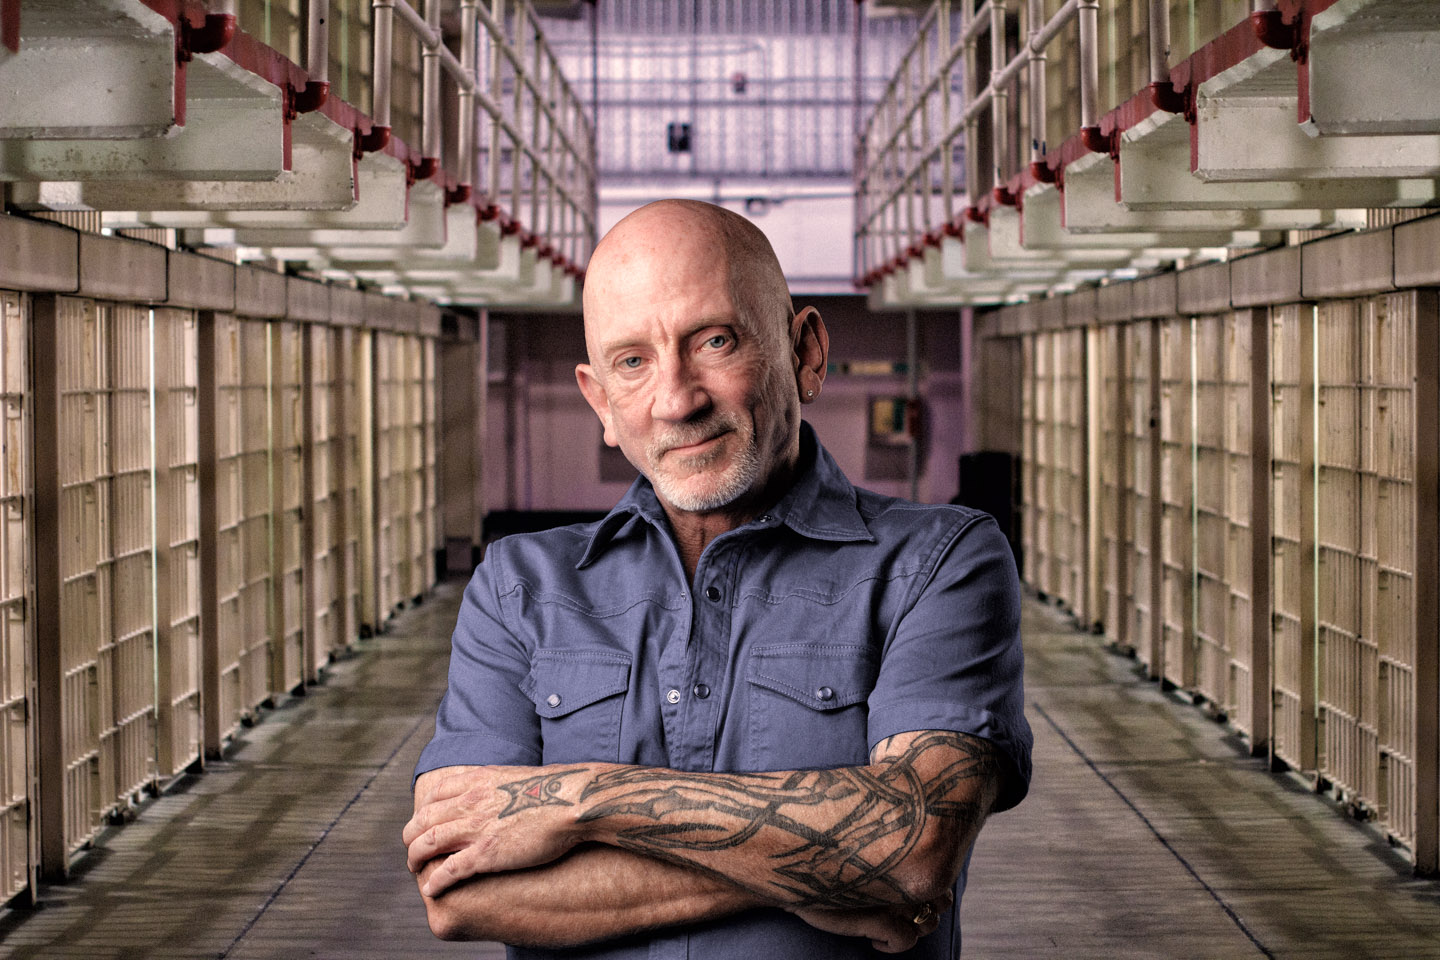 Tough guy with tattoos photoshopped into Alcatraz